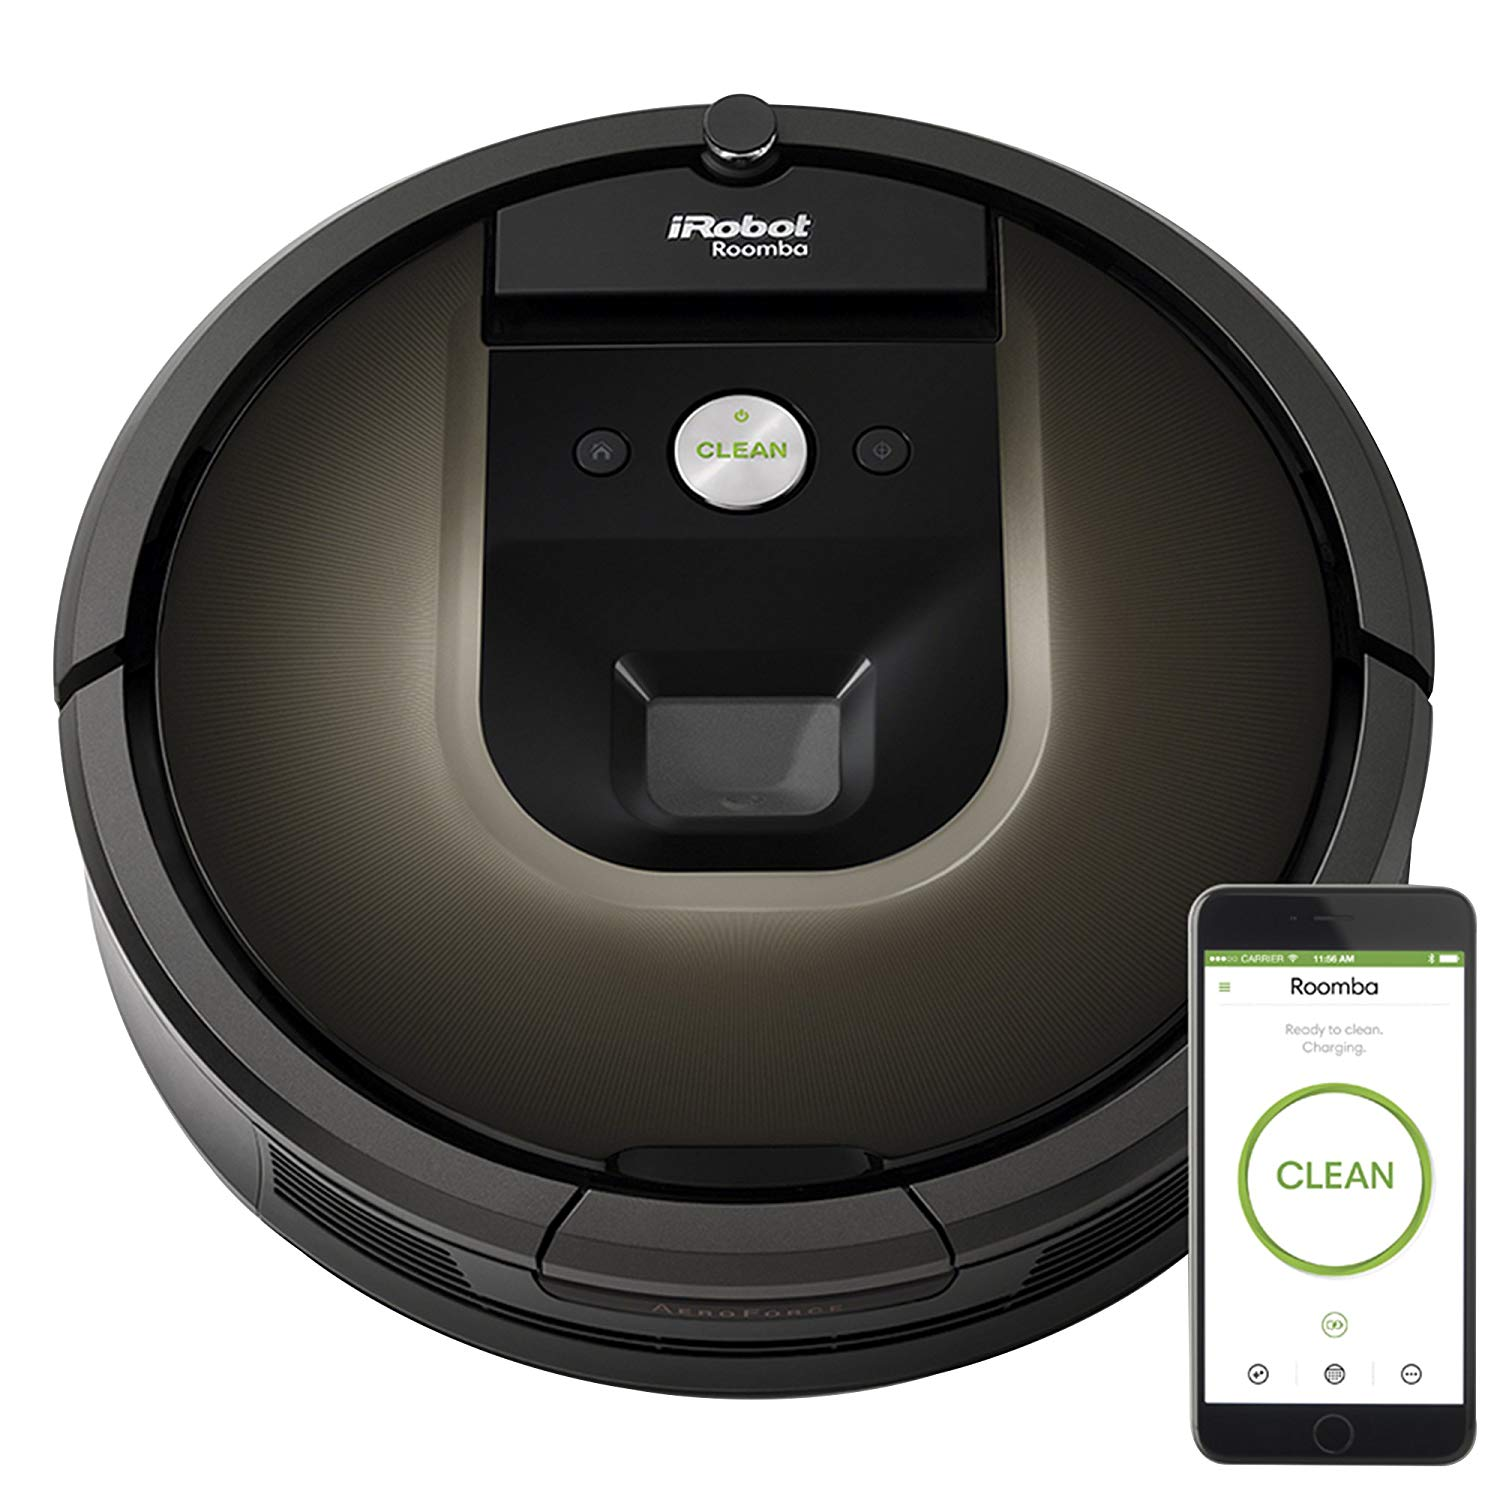 The iRobot Roomba 980 new